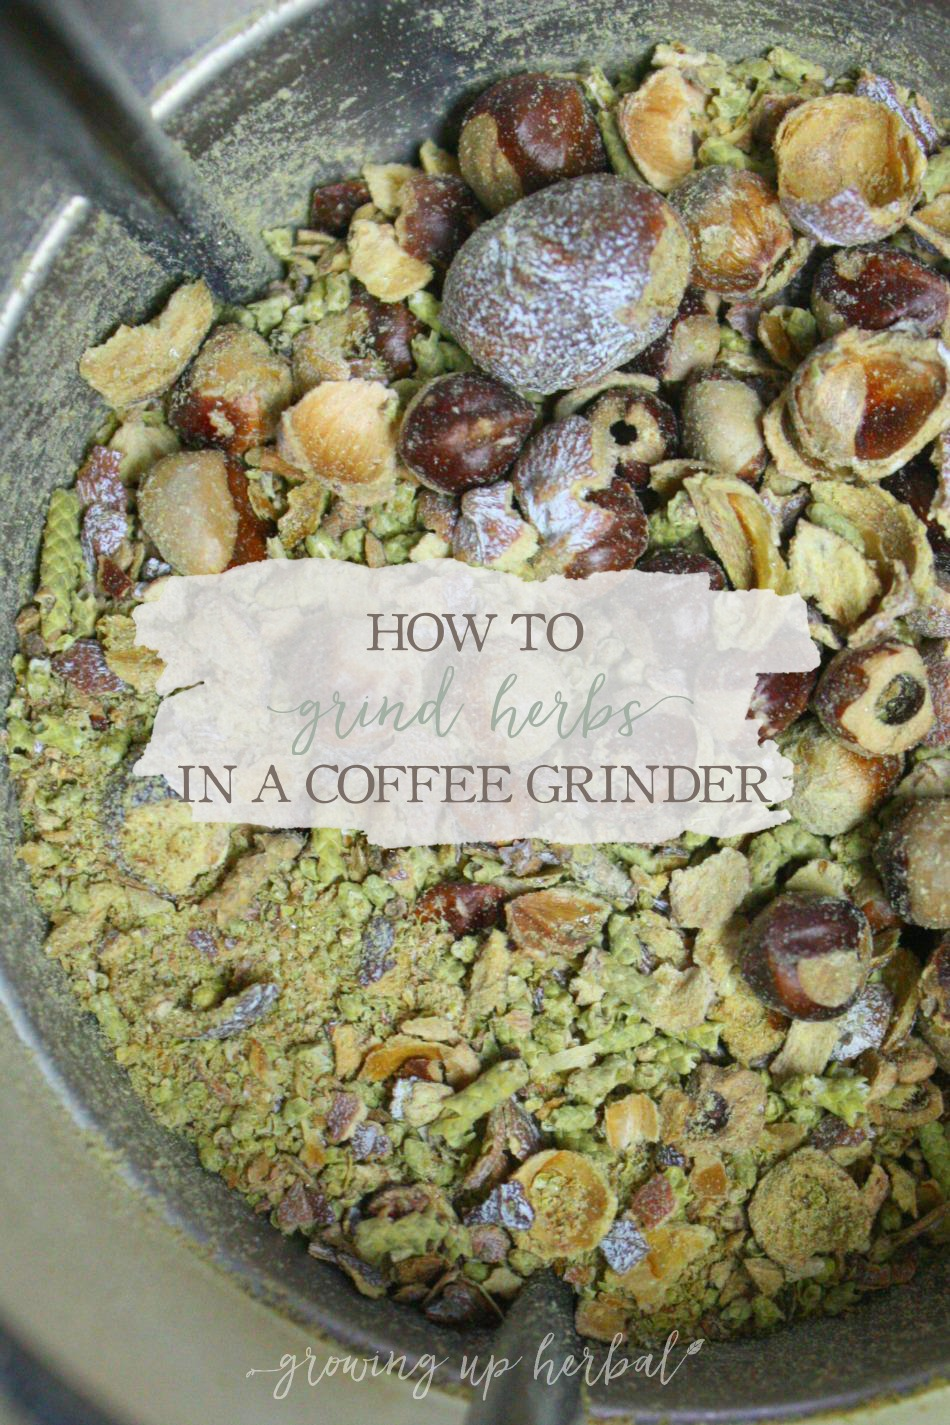 How To Grind Herbs In A Coffee Grinder | Growing Up Herbal | Learn how to correctly grind herbs in a coffee grinder in order to extract more of their properties!